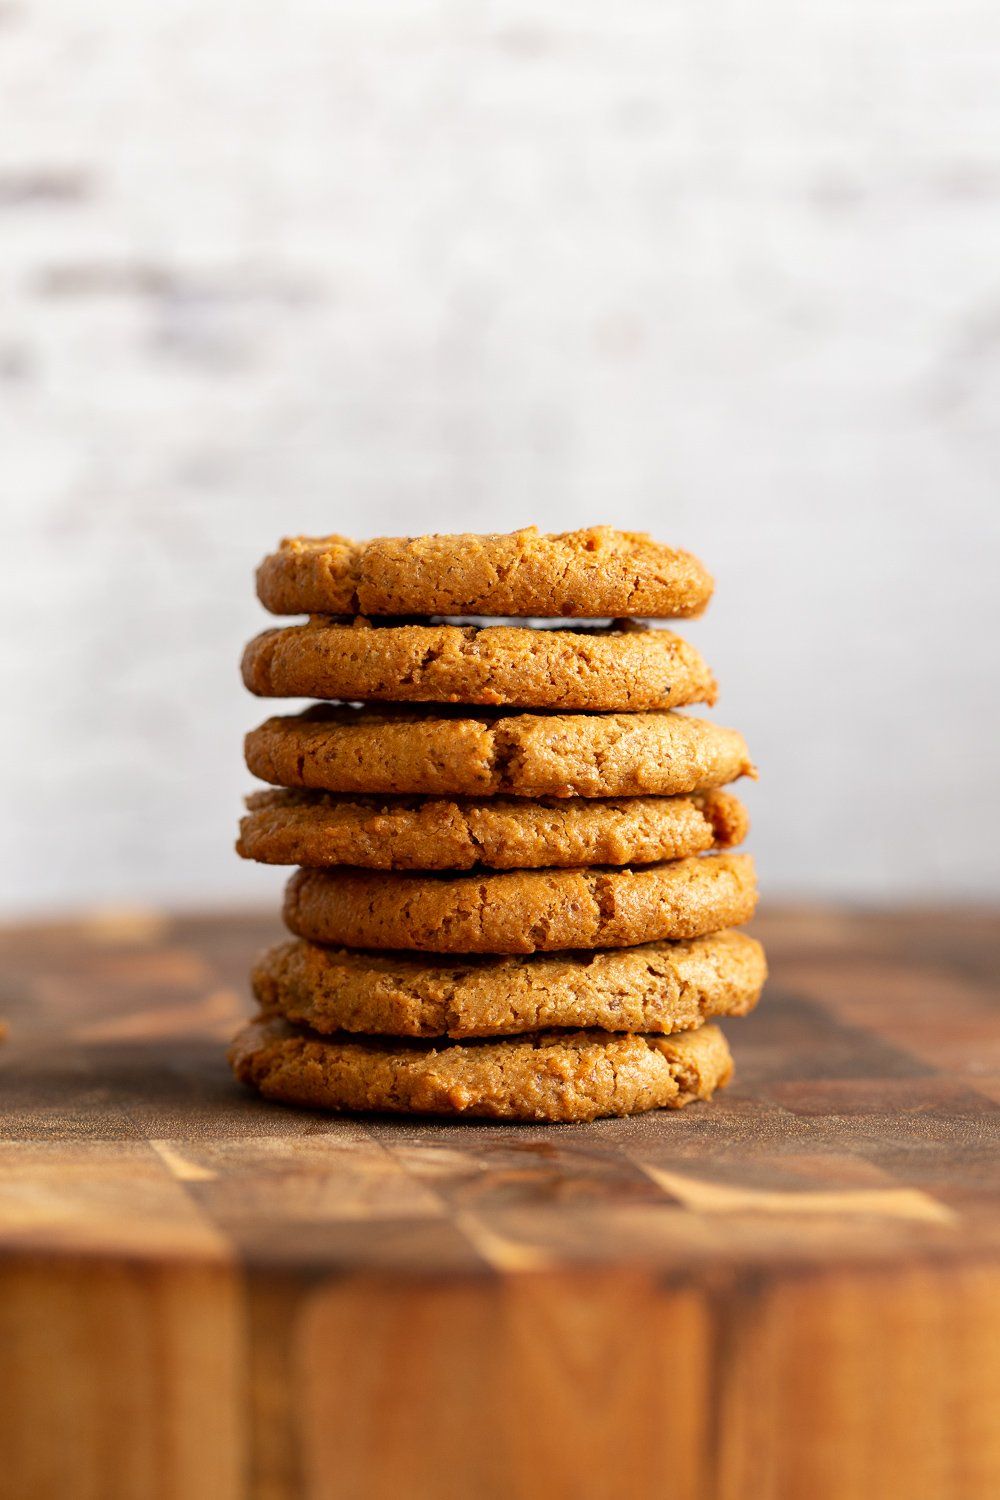 Our Chai Spice Tahini Cookies Nut free stacked on a wood board